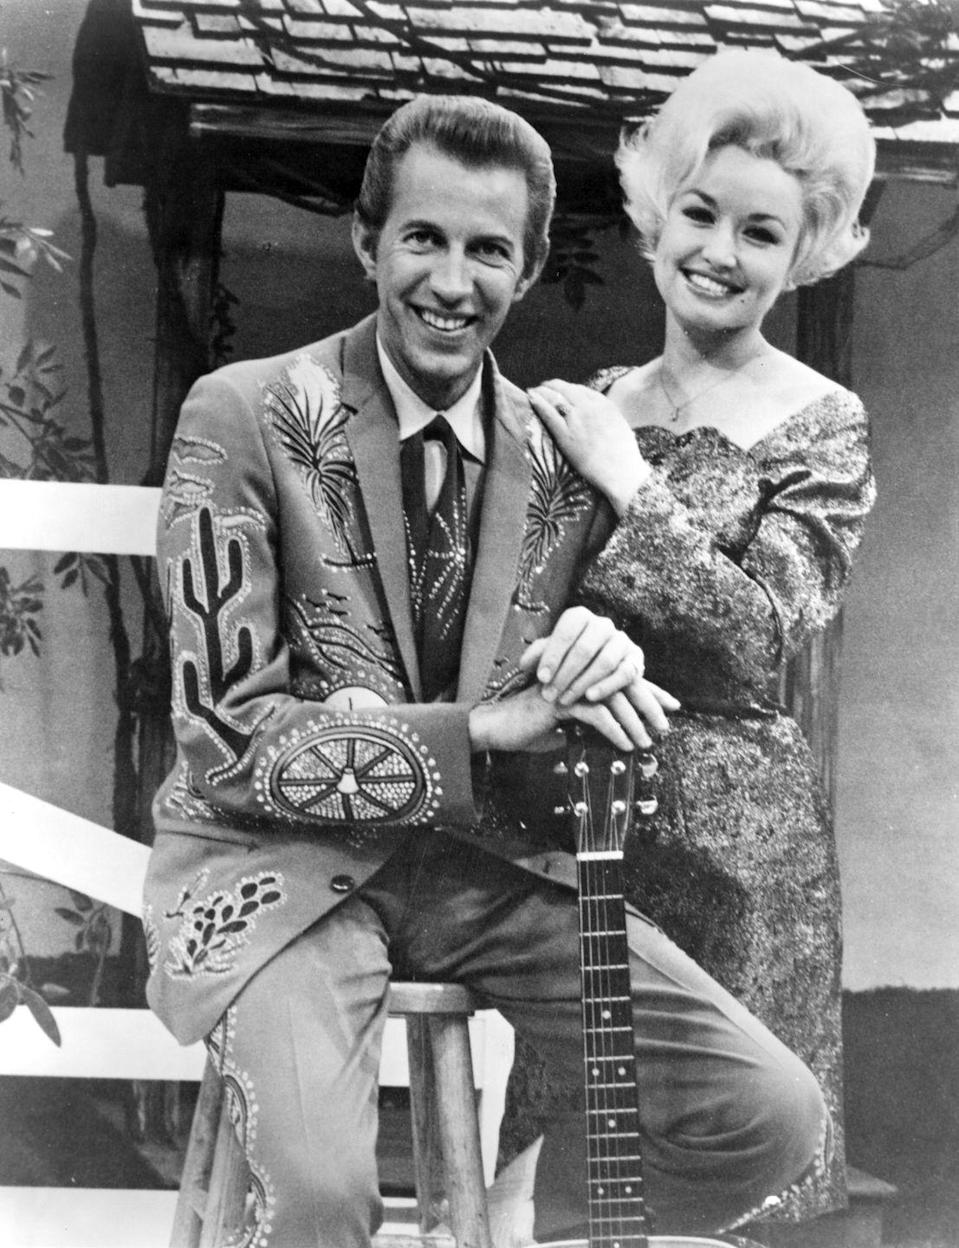 "<p>Much of Dolly's early success is do to her spot on Porter Wagoner's television series <em>The Porter Wagoner Show</em>. The two become close and often sang duets together. When Dolly eventually left the show to pursue a solo career, she wrote her famous song ""I Will Always Love You"" about saying goodbye to her old friend.</p><p><strong>RELATED:</strong> <a href=""https://www.goodhousekeeping.com/life/entertainment/a30570197/dolly-parton-i-will-always-love-you-lyrics-meaning/"" rel=""nofollow noopener"" target=""_blank"" data-ylk=""slk:The Real Story Behind Why Dolly Parton Wrote the Song &quot;I Will Always Love You&quot;"" class=""link rapid-noclick-resp"">The Real Story Behind Why Dolly Parton Wrote the Song ""I Will Always Love You""</a></p>"